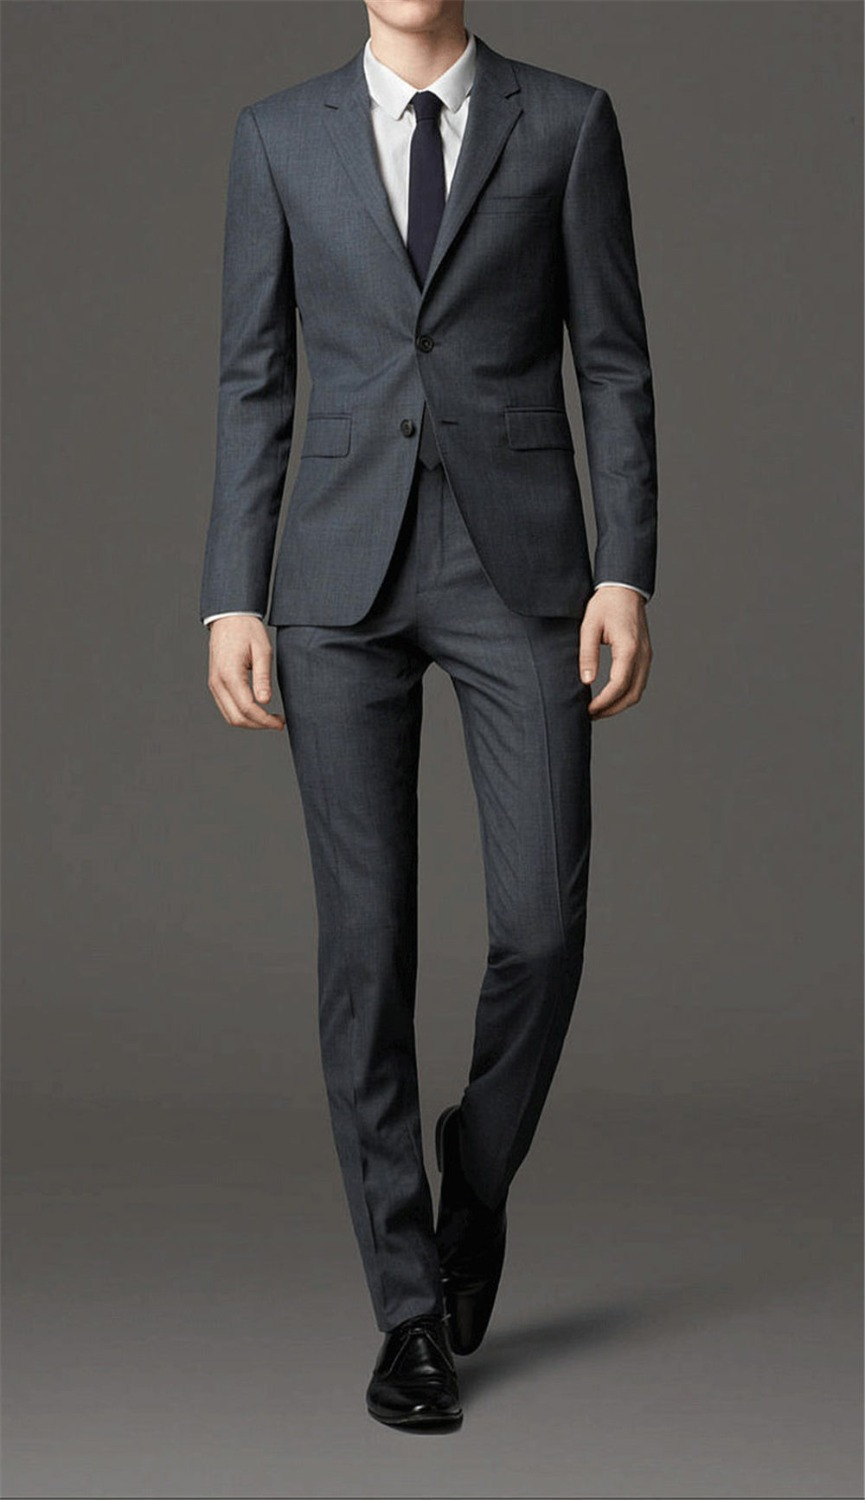 Picture Partie De Smoking Mariage Mode Marque veste Slim Buisness Ensembles Blazer Picture 2018 As Pantalon Costume as Fit Homme Costumes Coton Formelle Cravate Robe wU4xv1qY